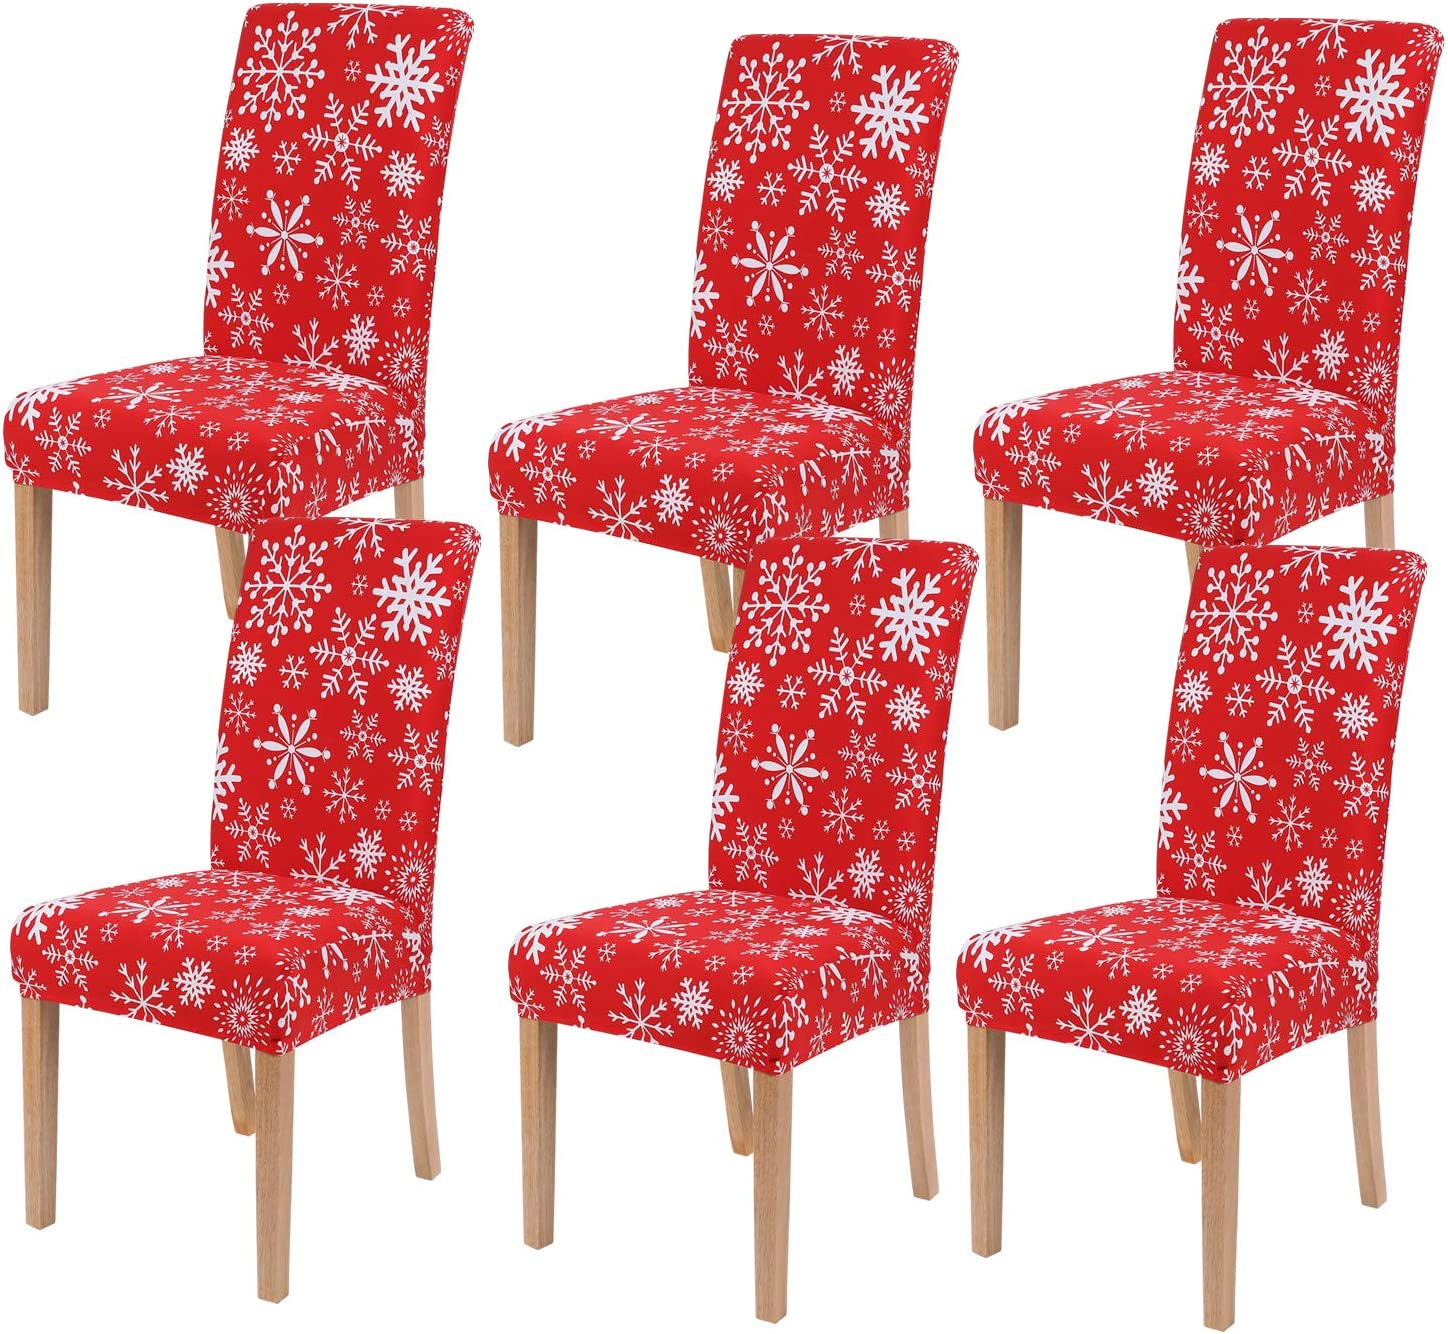 smiry 6 Pack Printed Dining Chair Covers, Stretch Spandex Removable Washable Dining Chair Protector Slipcovers for Home, Kitchen, Party, Restaurant (Red with White)